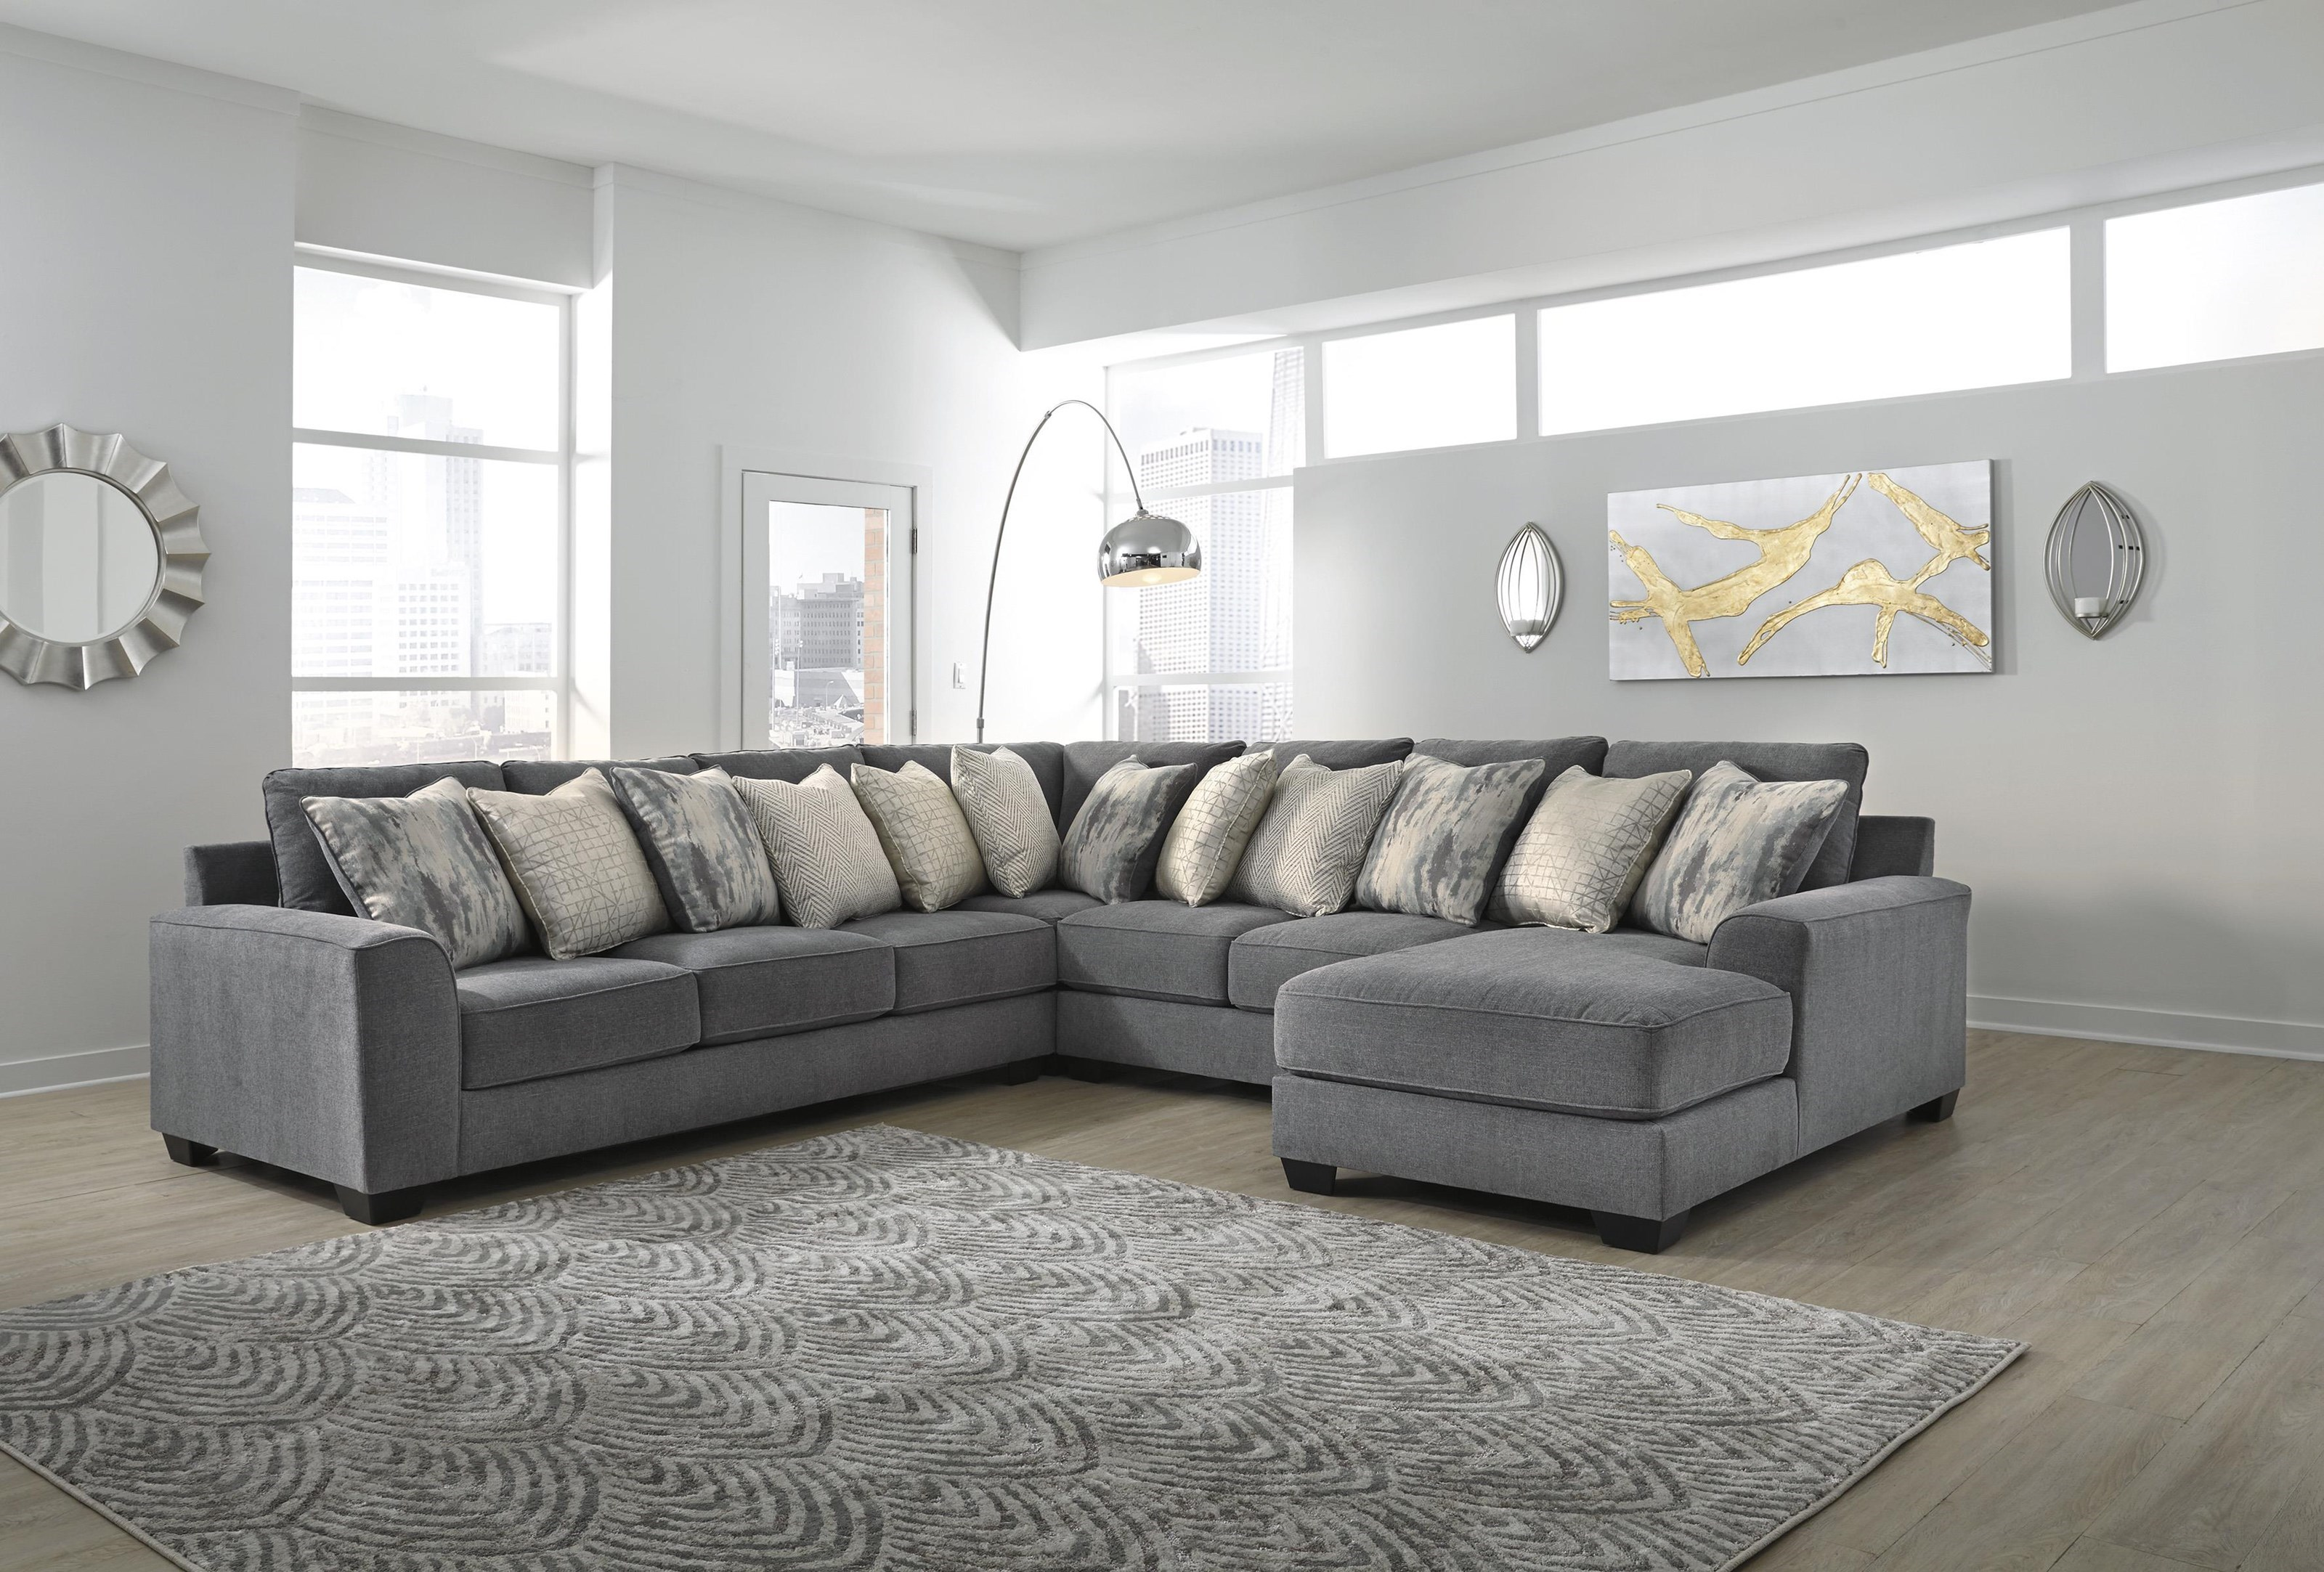 Picture of: Ashley Furniture Castano 13302 66 77 34 17 4 Piece Grey Sectional Sam Levitz Furniture Sectional Sofas